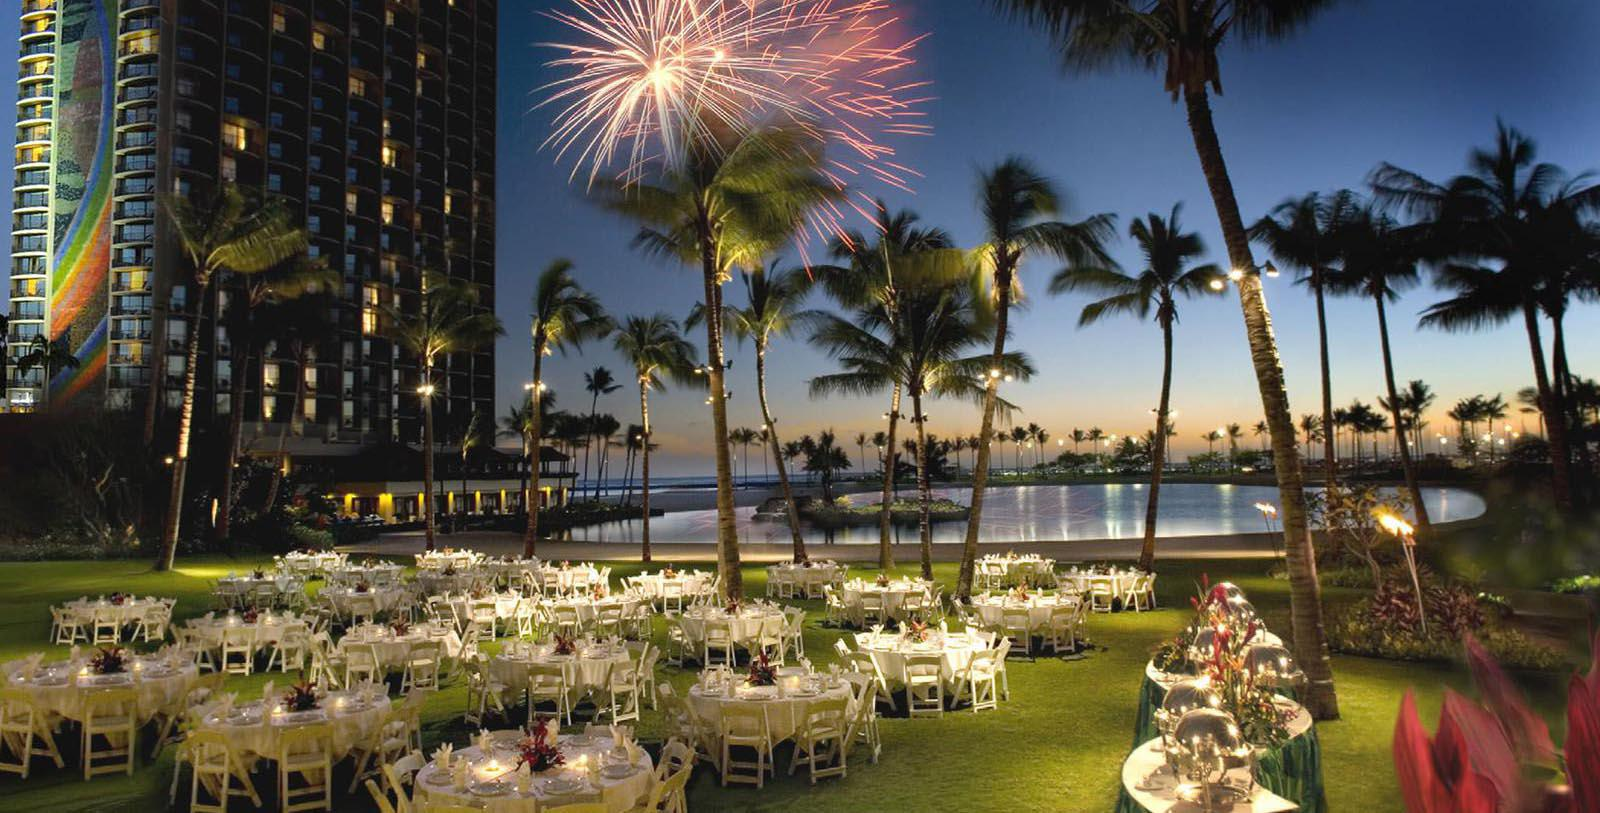 Image of fireworks over pool at Hilton Hawaiian Village® Waikiki Beach Resort, 1957, Member of Historic Hotels of America, in Honolulu, Hawaii, Experience